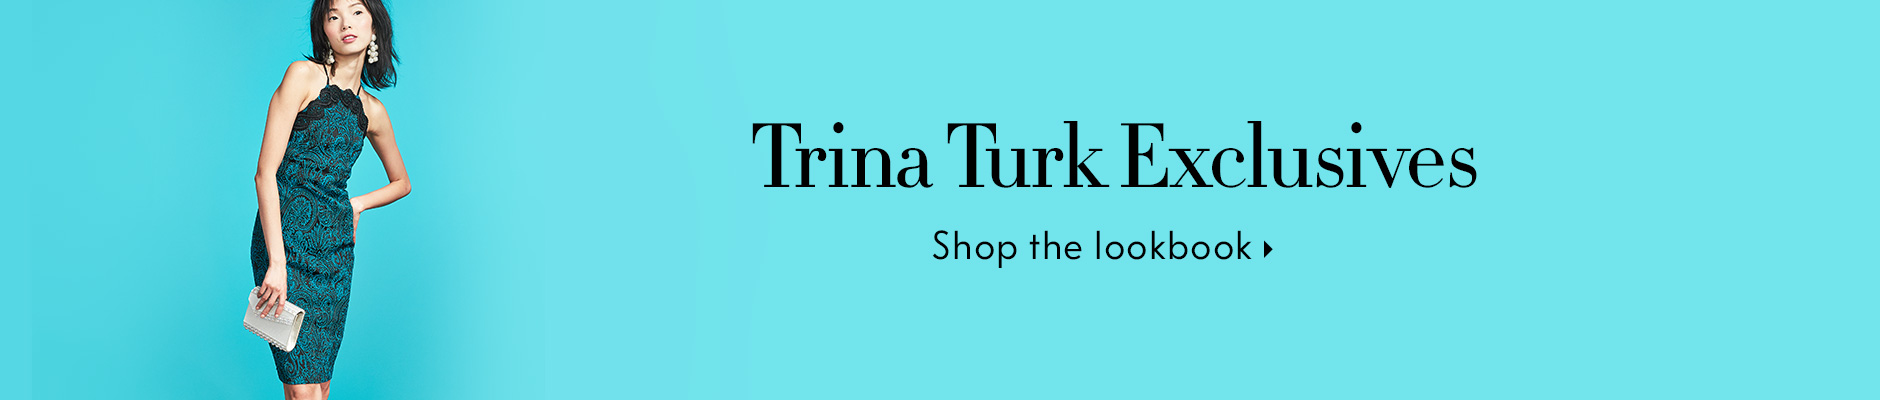 OnlyatNM TrinaTurk  Lookbook